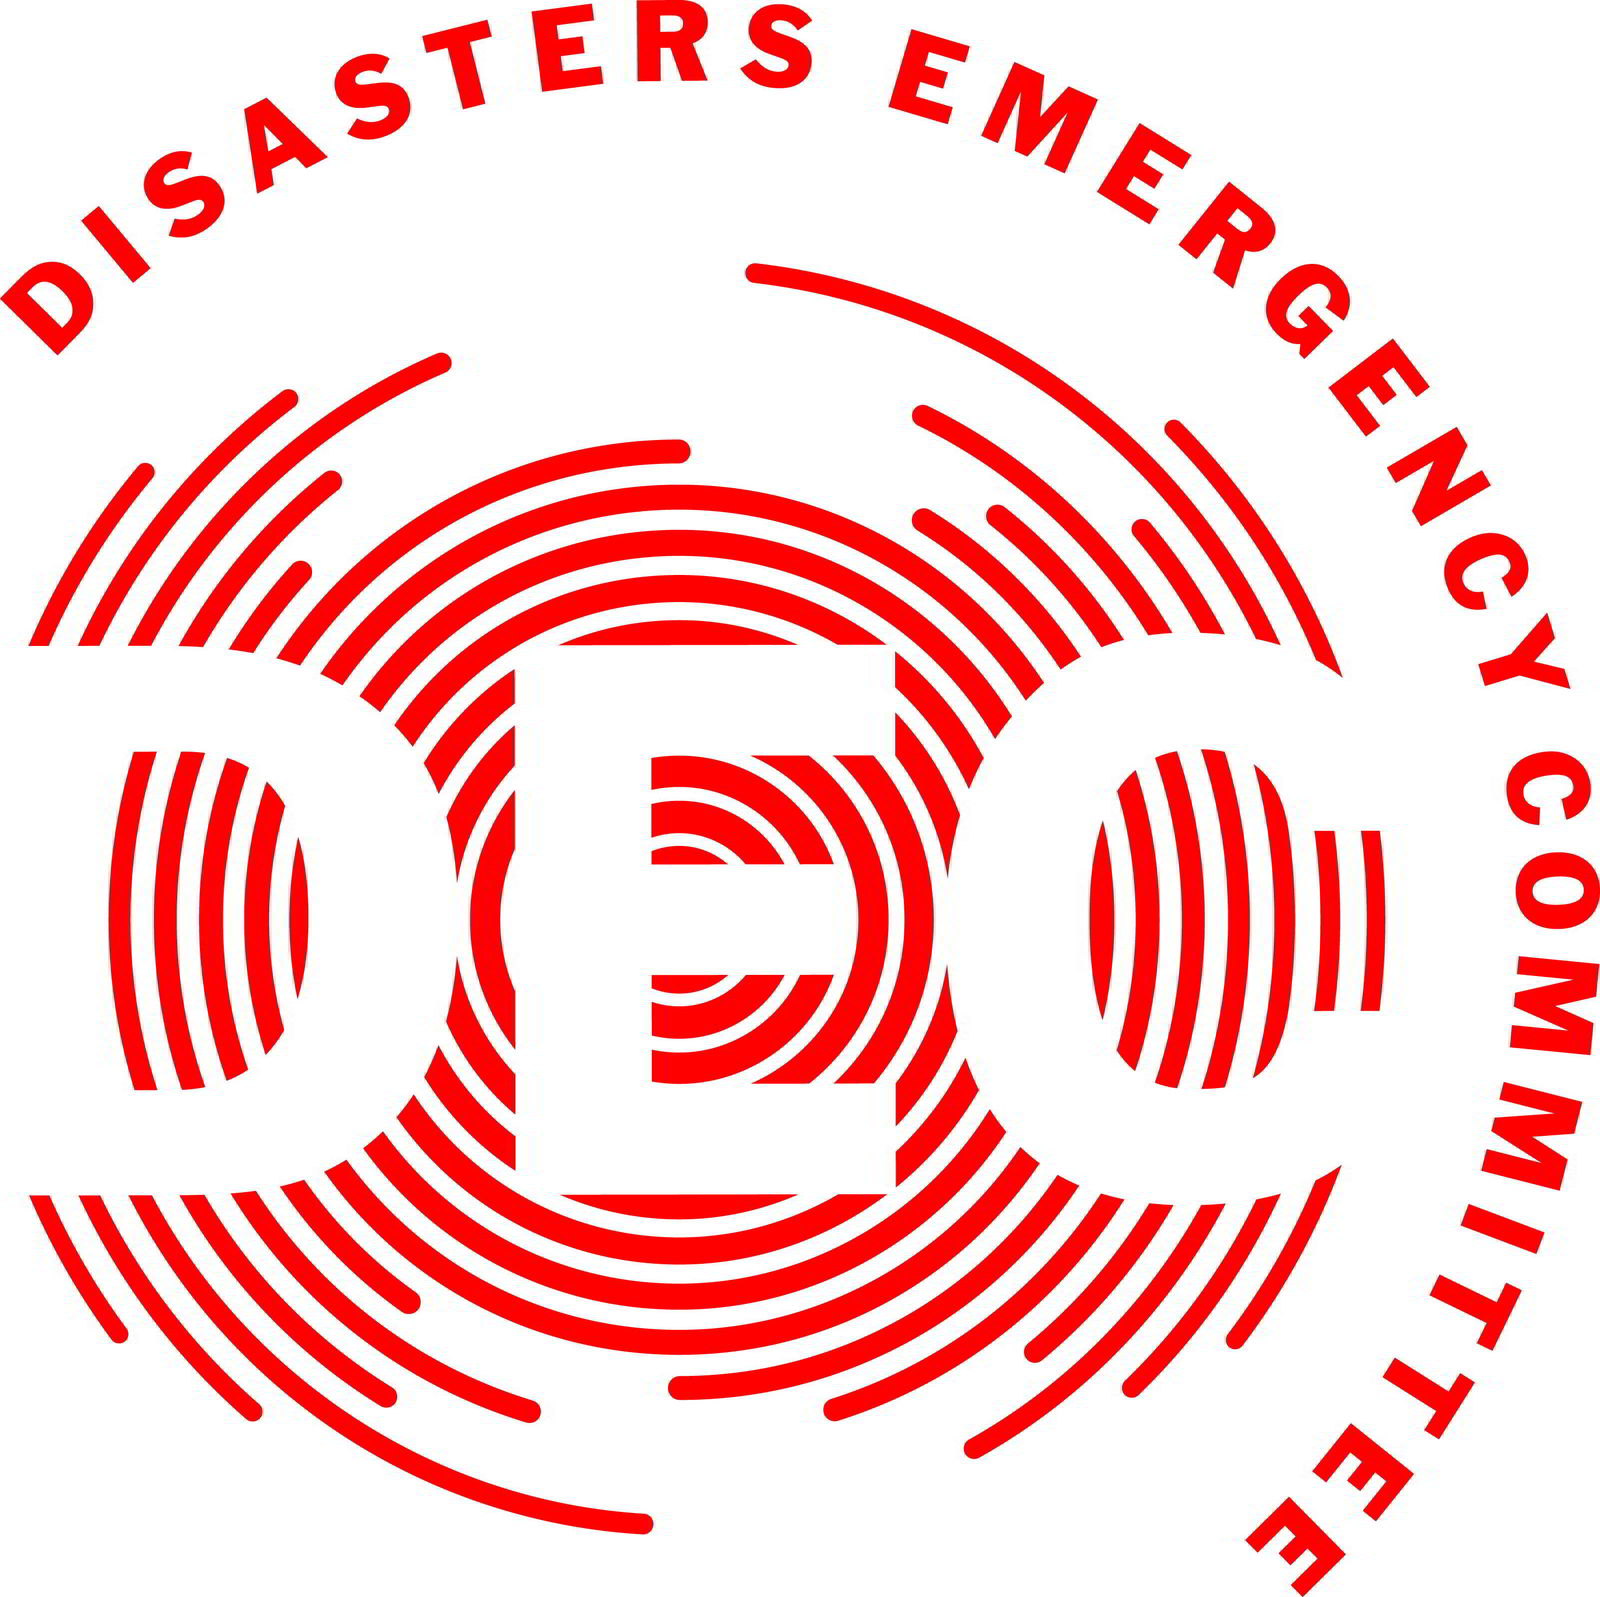 Fundraising for the Disasters Emergency Committee